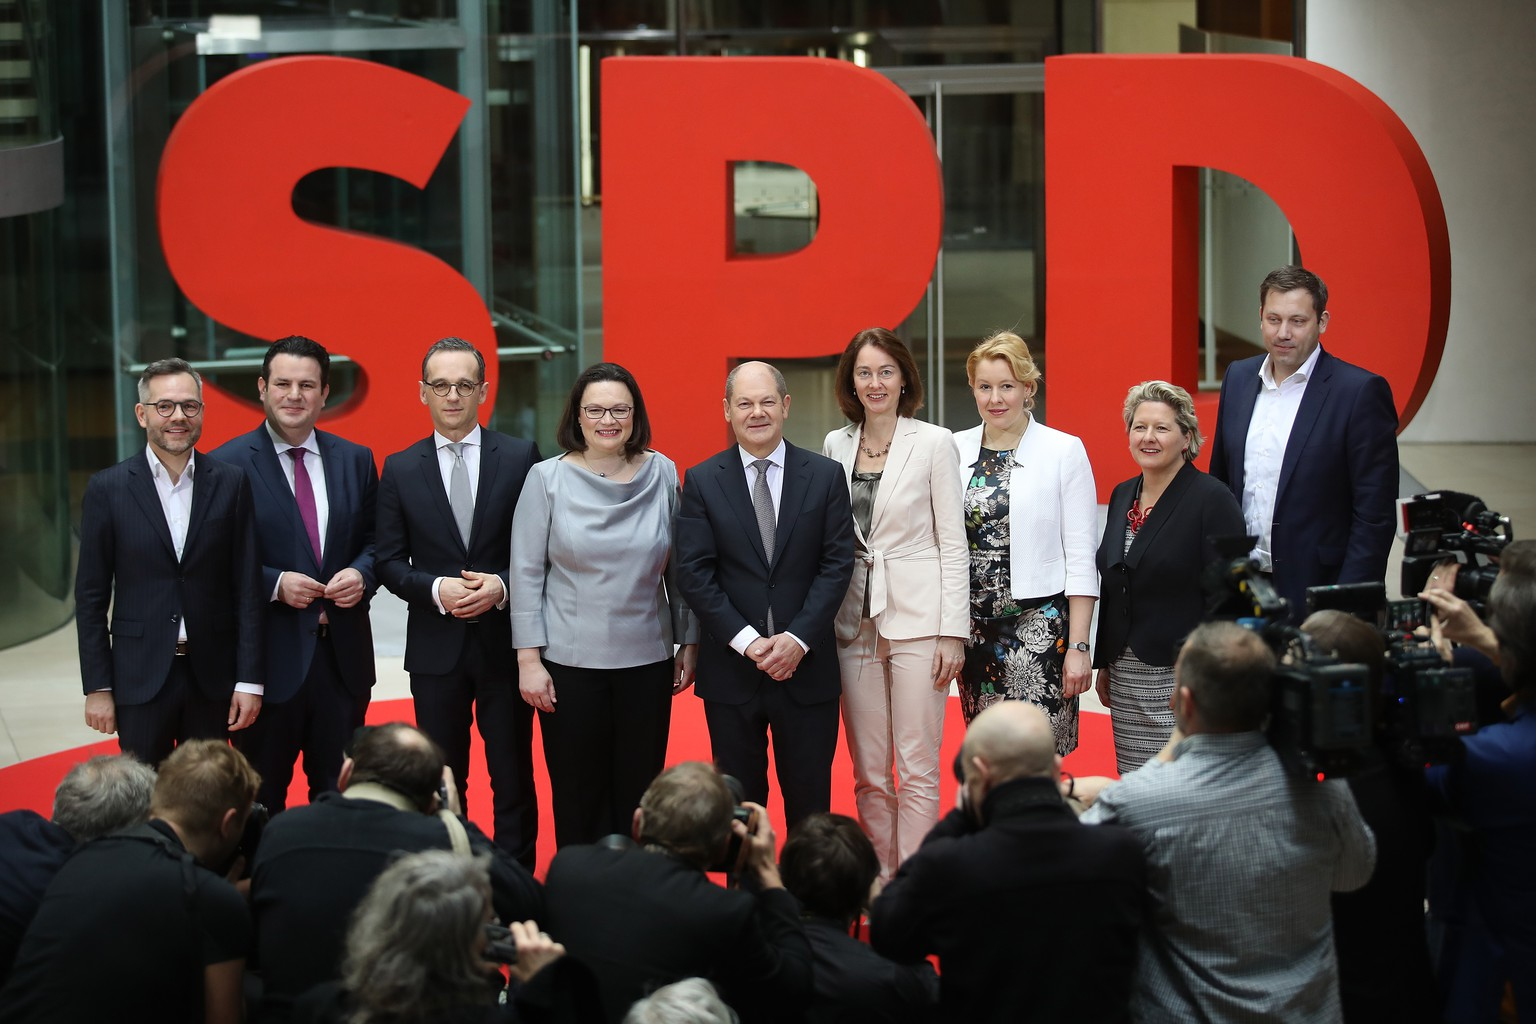 BERLIN, GERMANY - MARCH 09:  German Social Democrats (SPD) leader Andrea Nahles (4th from L) and General Secretary Lard Klingbeil (R) pose with SPD members of the next German government cabinet: (from L to R, starting 2nd from L) Hubertus Heil, who is to become Minister of Work and Social Issues, Heiko Maas, currently Justice Minister and who is to become Foreign Minister, Olaf Scholz, who is to become Finance Minister and Vice Chancellor, Katarina Barley, who is to become Justice Minister, Franziska Giffey, who is to become Family Minister, and Svenja Schulze, who is to become Environment Minister, as well as Forign Ministry State Secretary Michael Roth (L) at SPD headquarters on March 9, 2018 in Berlin, Germany. The SPD and the German Christian Democrats (CDU/CSU) have agreed to form a government coalition that will face confirmation in the Bundestag and by German President Frank-Walter Steinmeier on March 14.  (Photo by Sean Gallup/Getty Images)